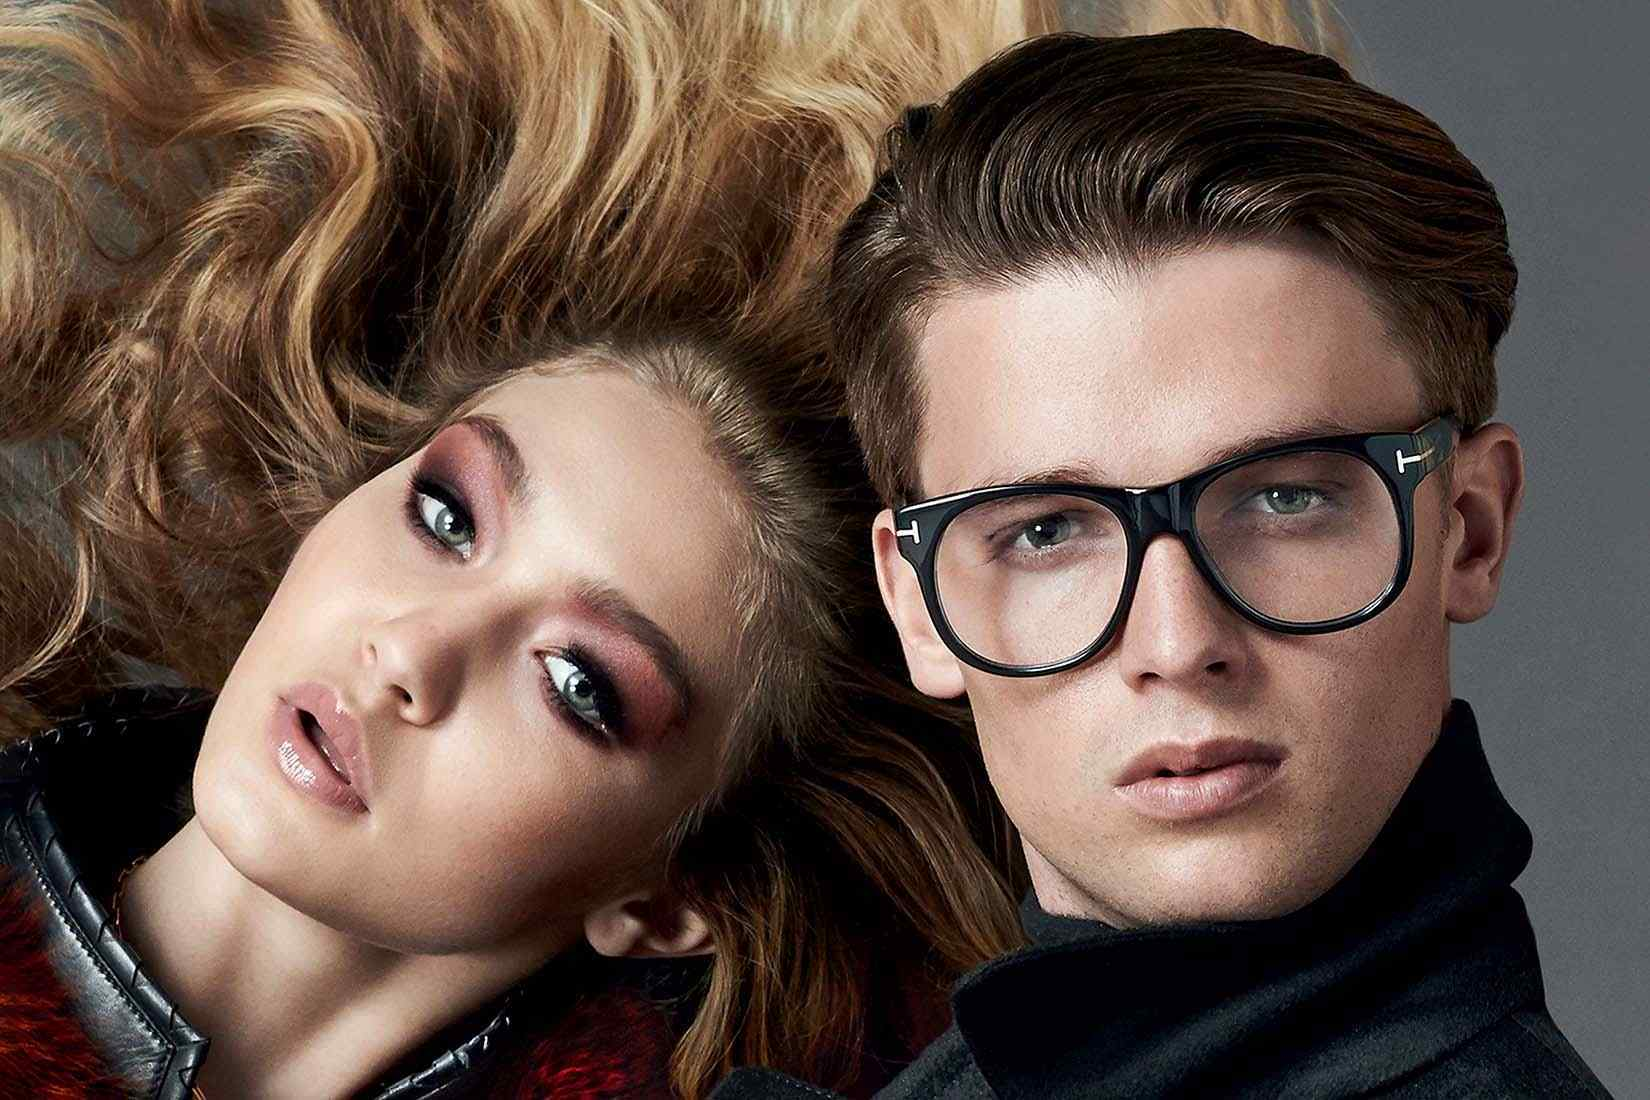 Tom Ford Spectacles 06 1650x1100